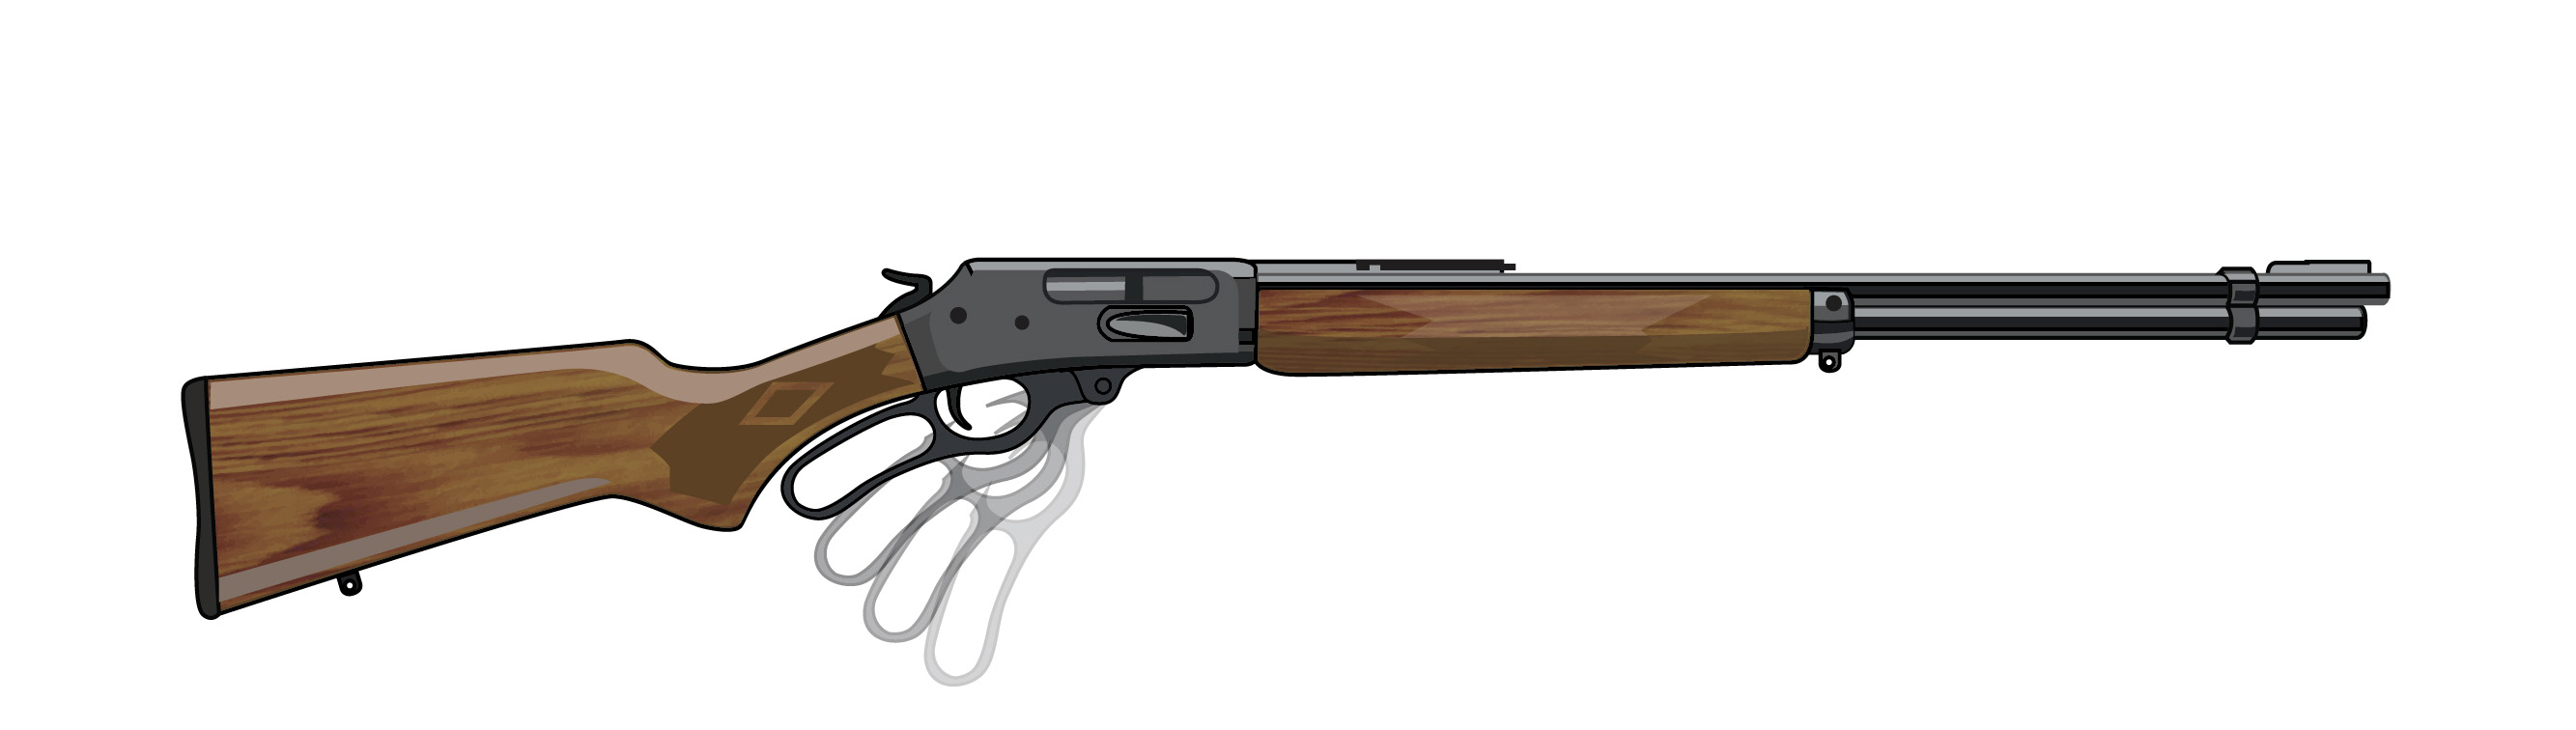 Illustration of a lever action rifle.